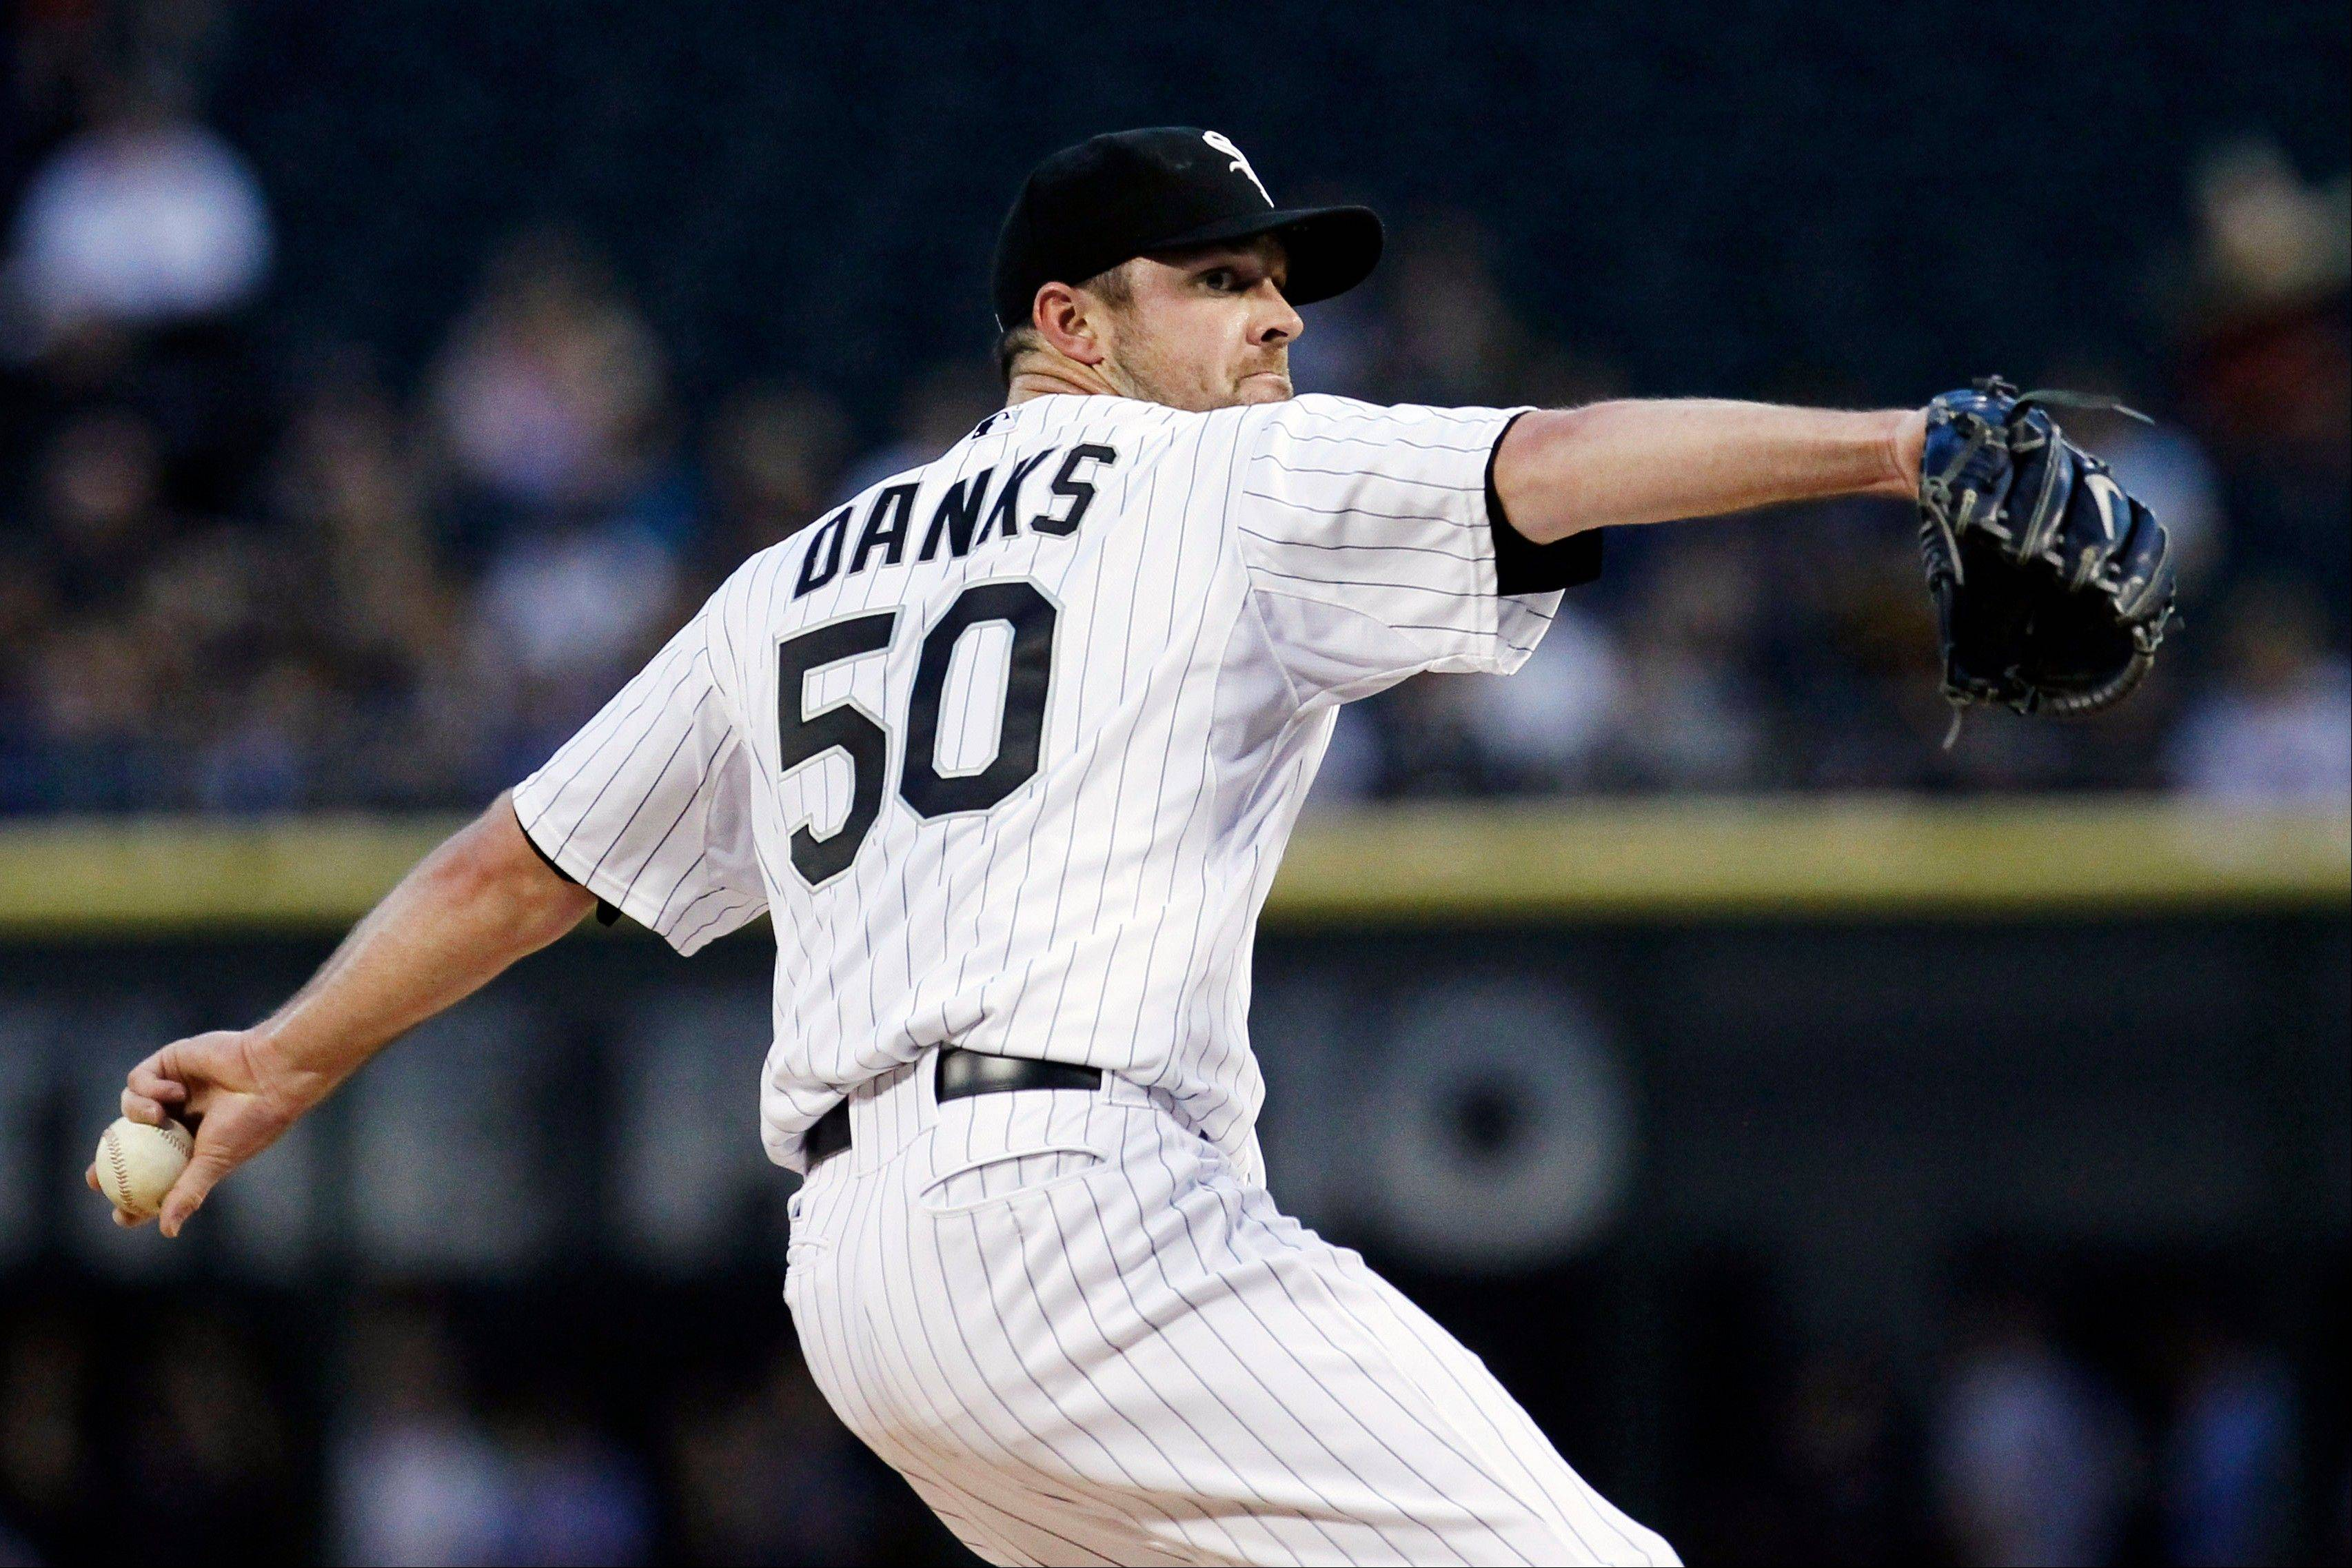 White Sox starting pitcher John Danks will have exploratory surgery Monday on his ailing shoulder.